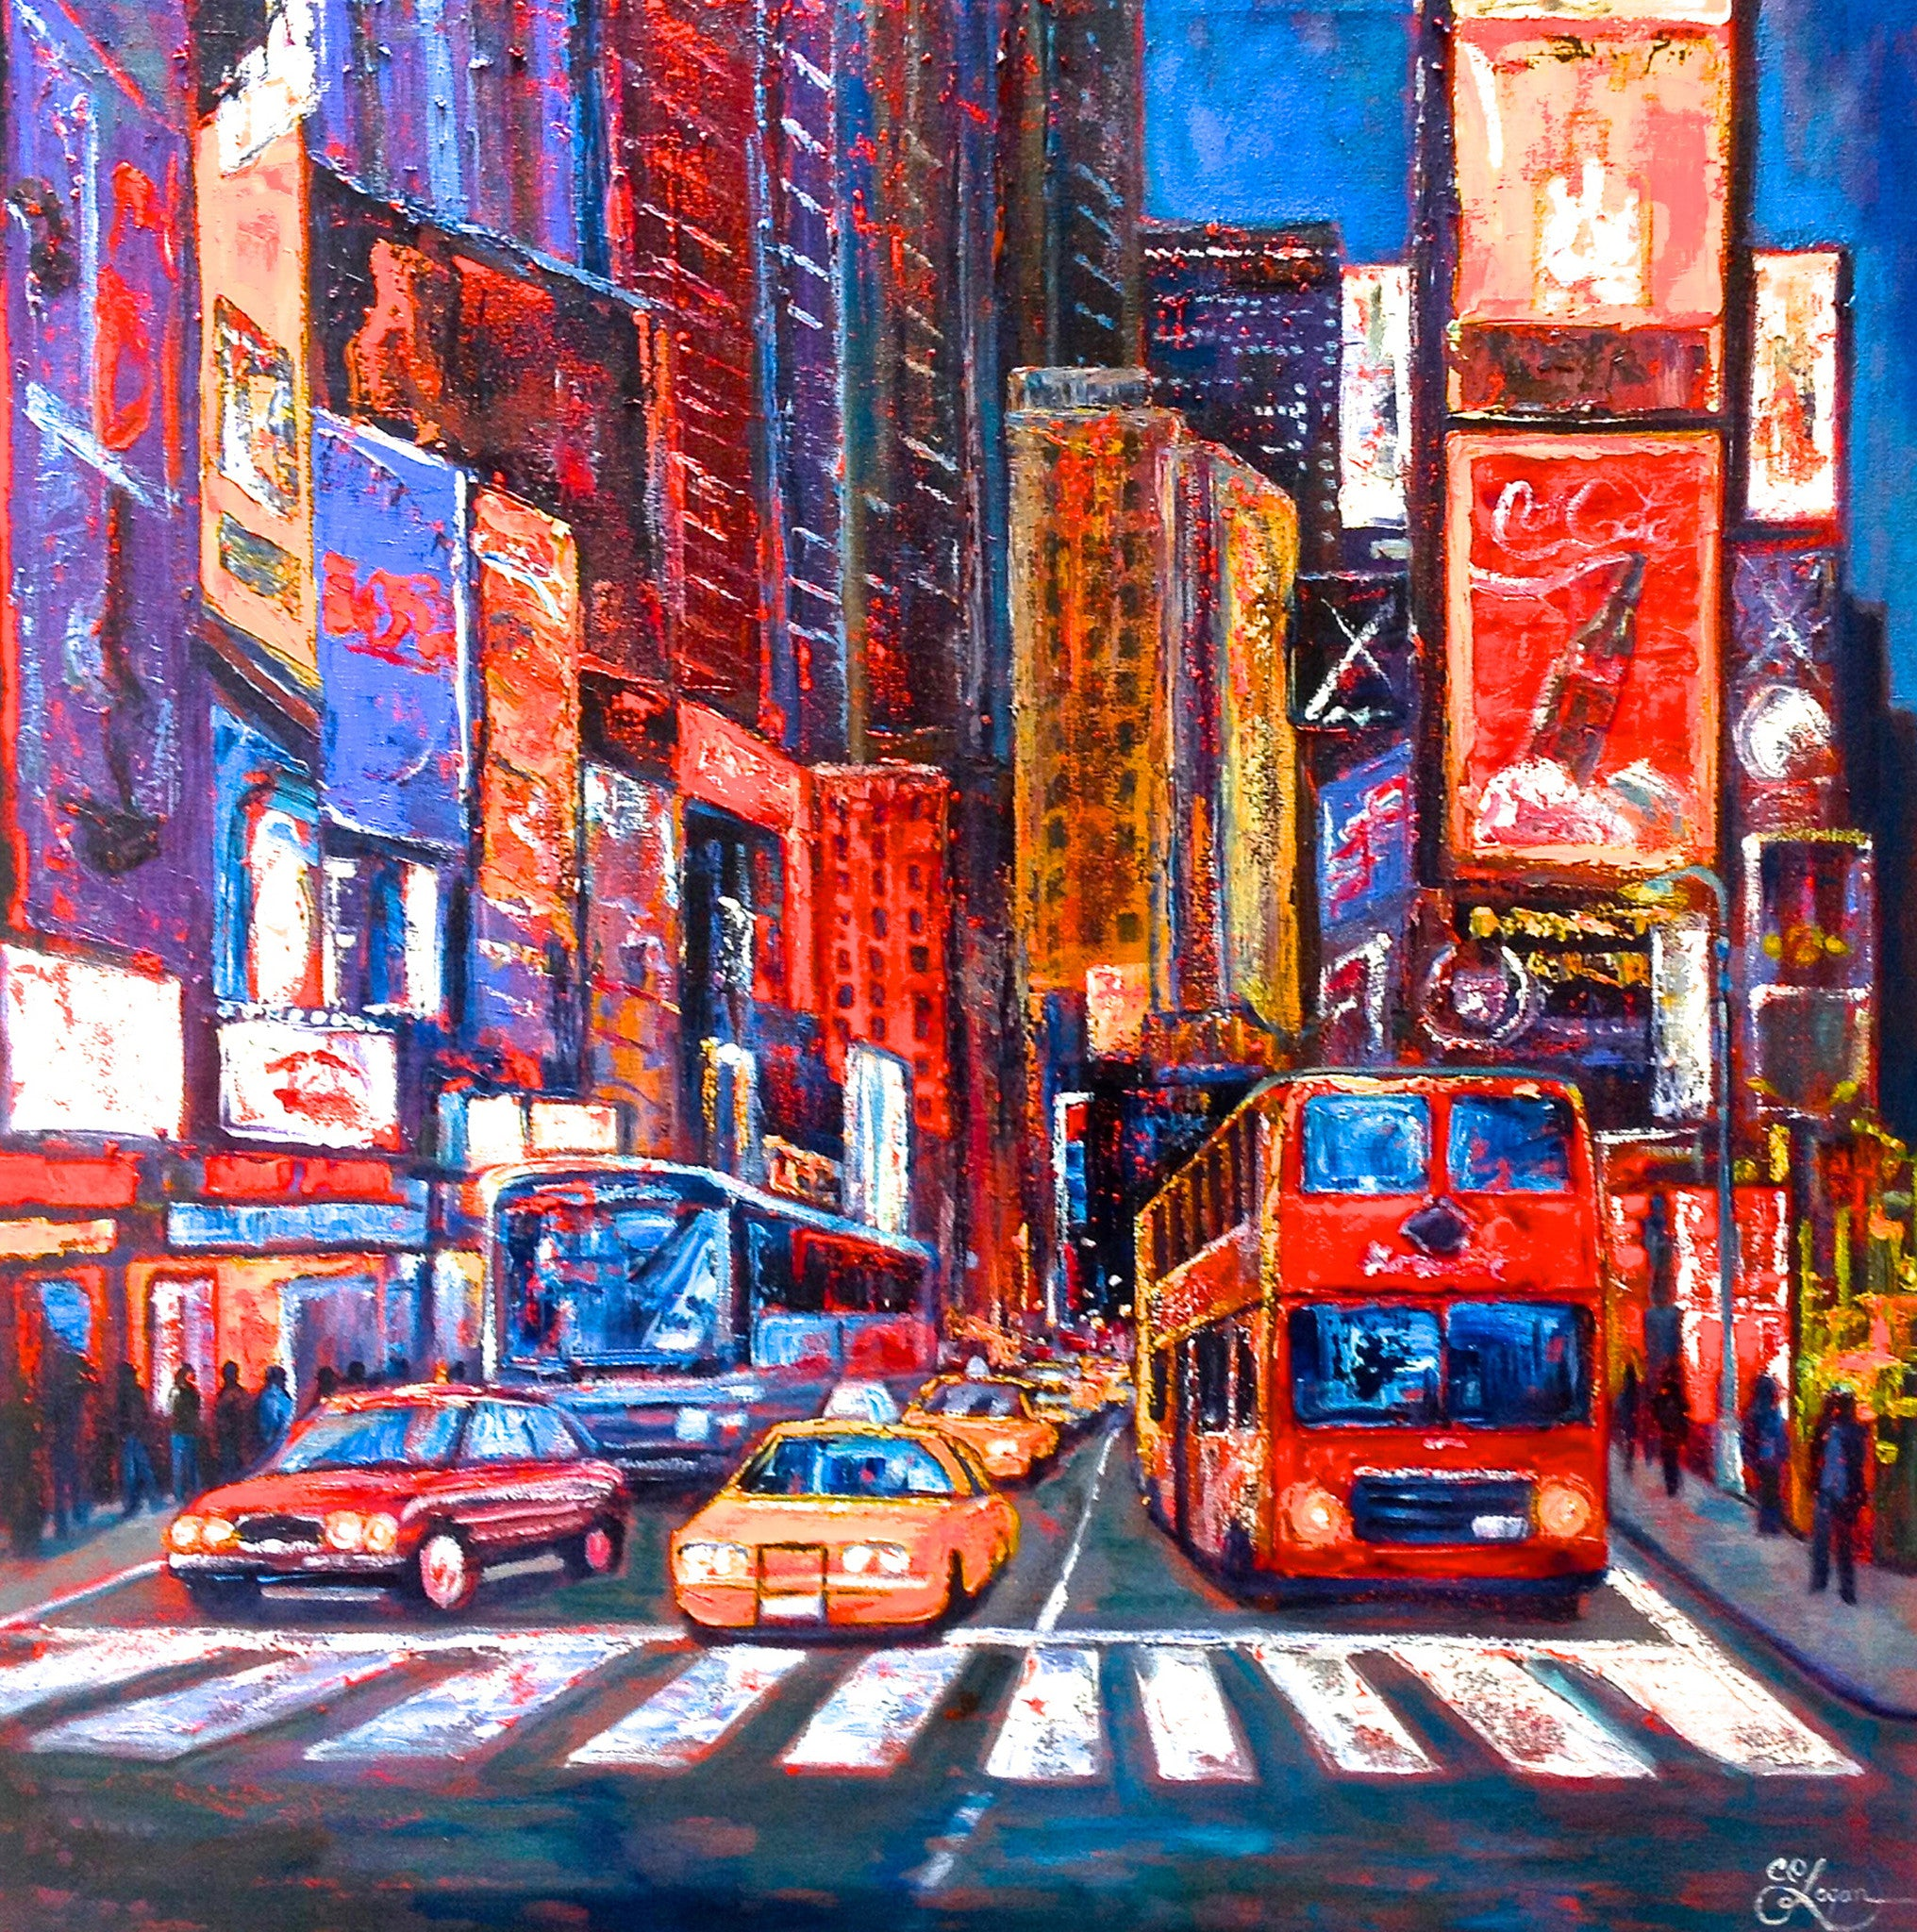 Neon in Times Square - 48 x 48 1800.